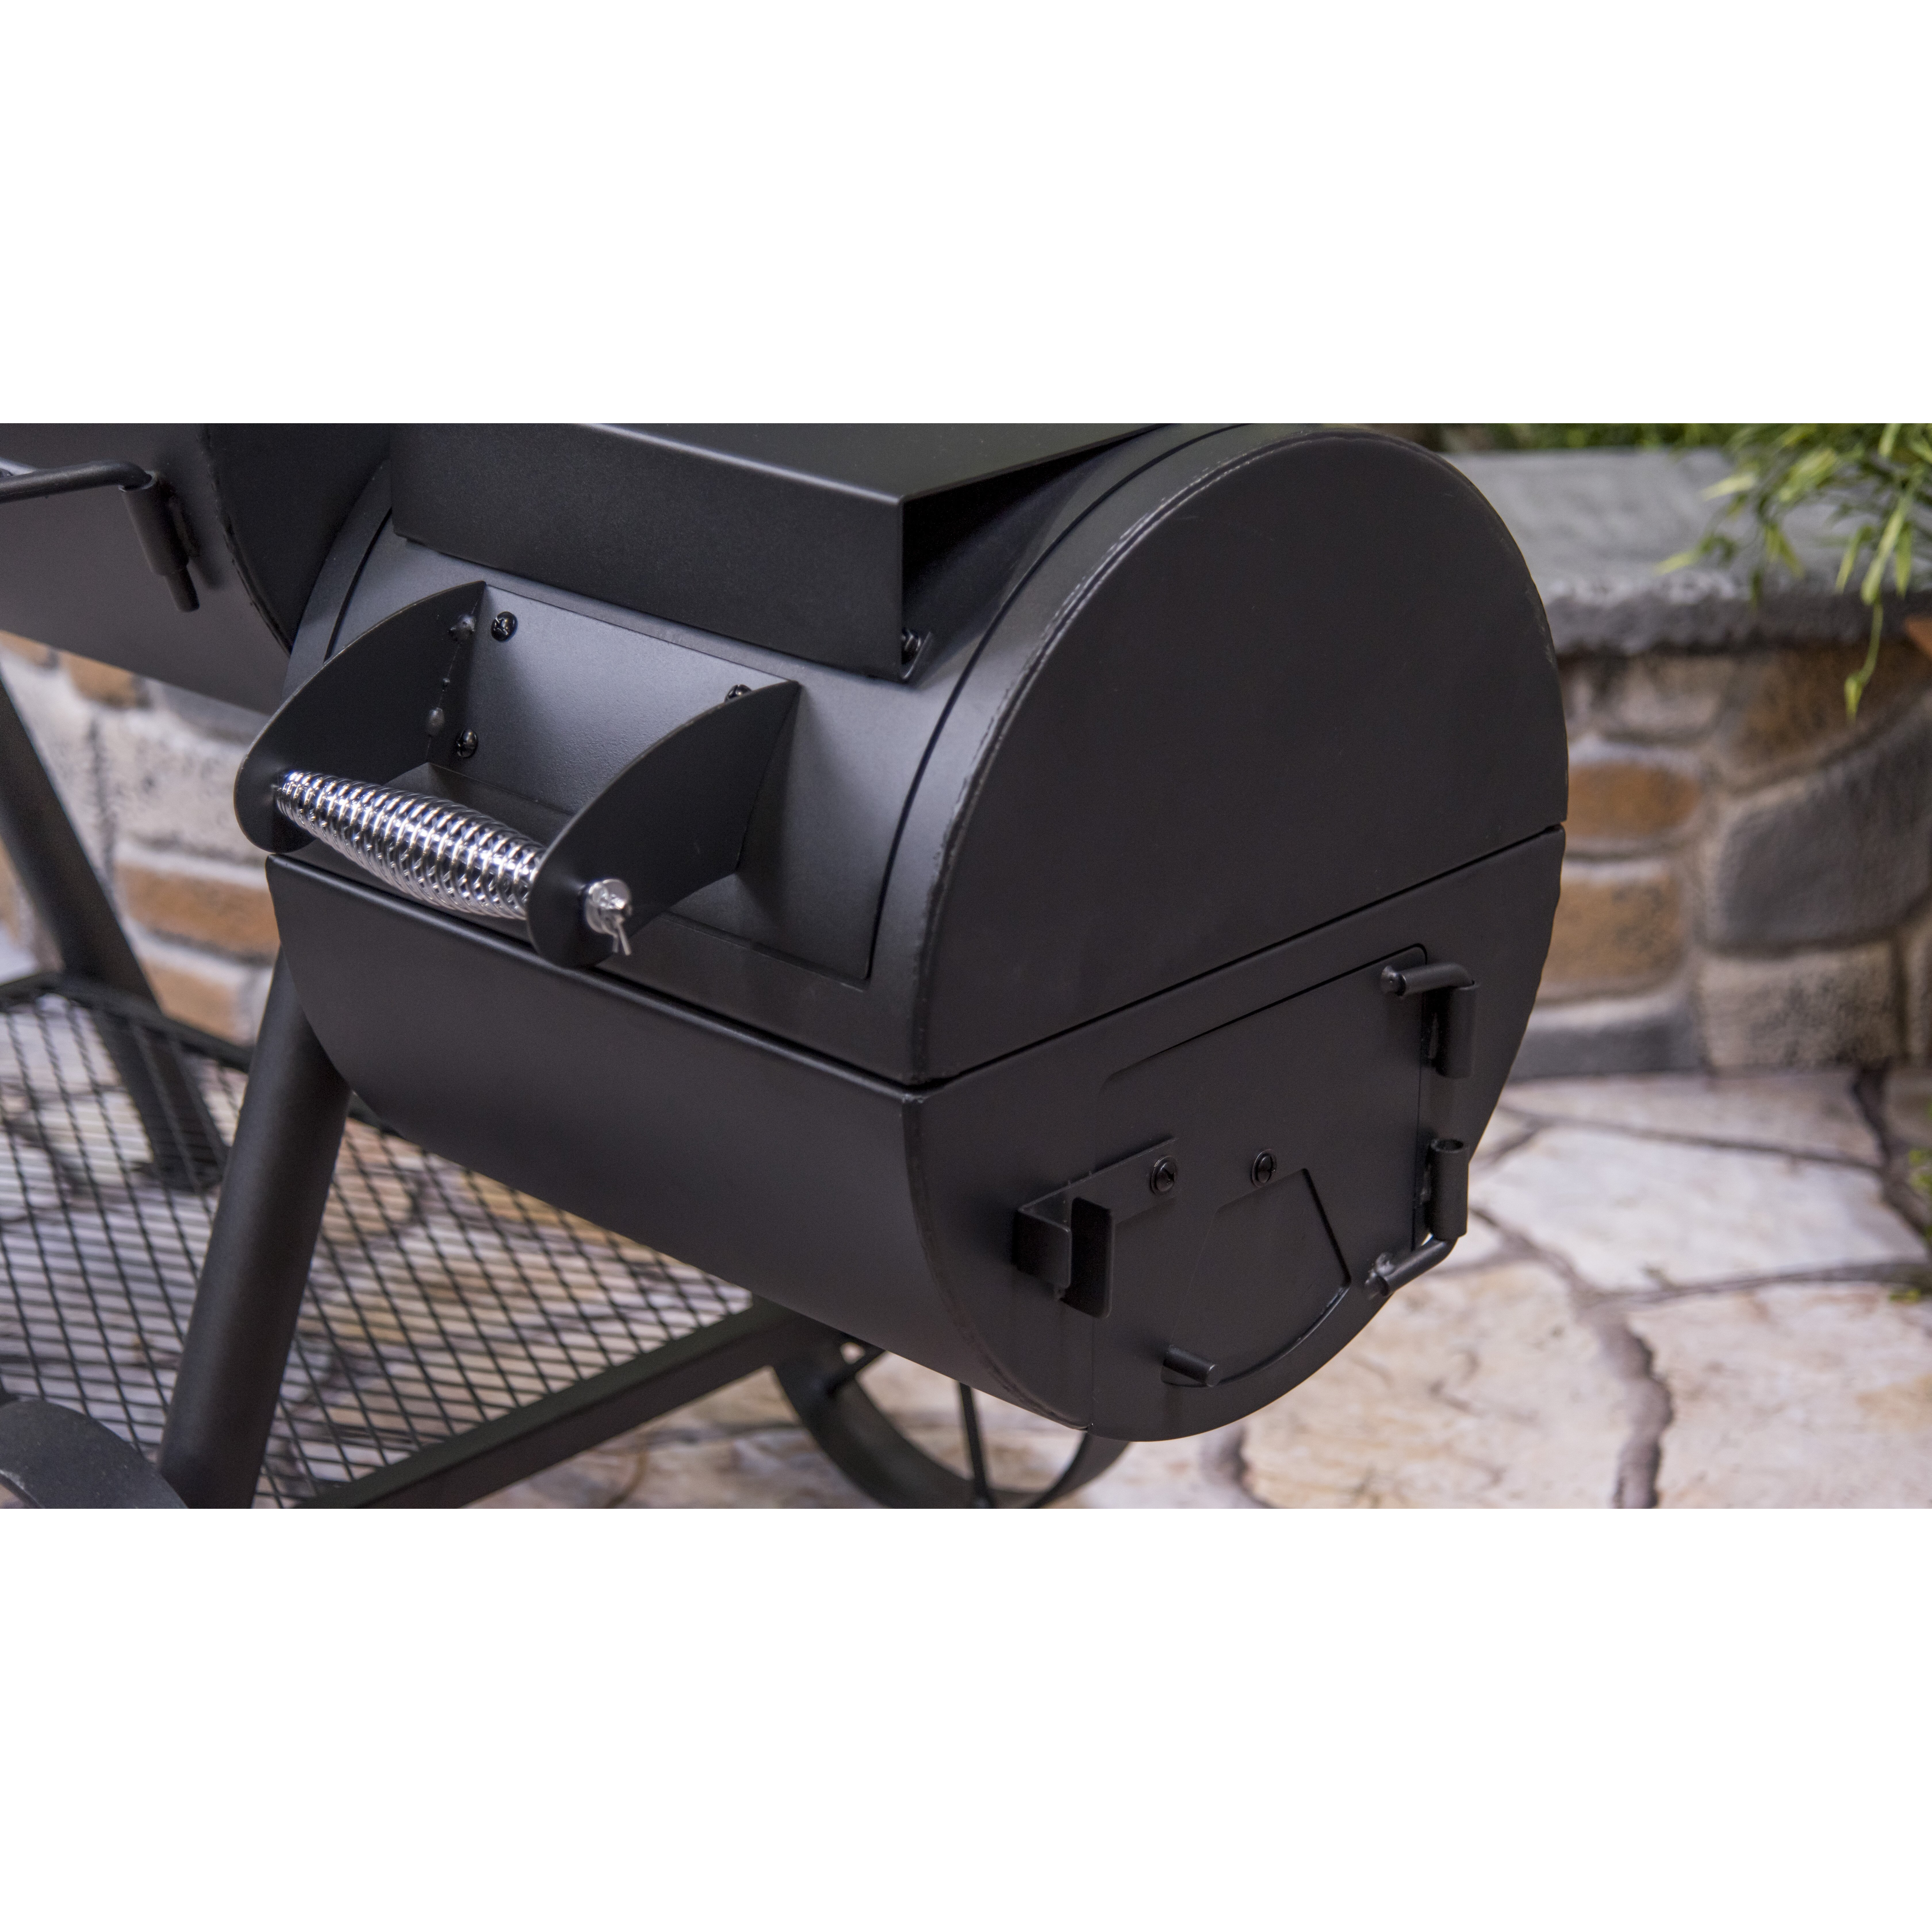 charbroil oklahoma joe 39 s highland offset charcoal smoker and grill reviews wayfair. Black Bedroom Furniture Sets. Home Design Ideas